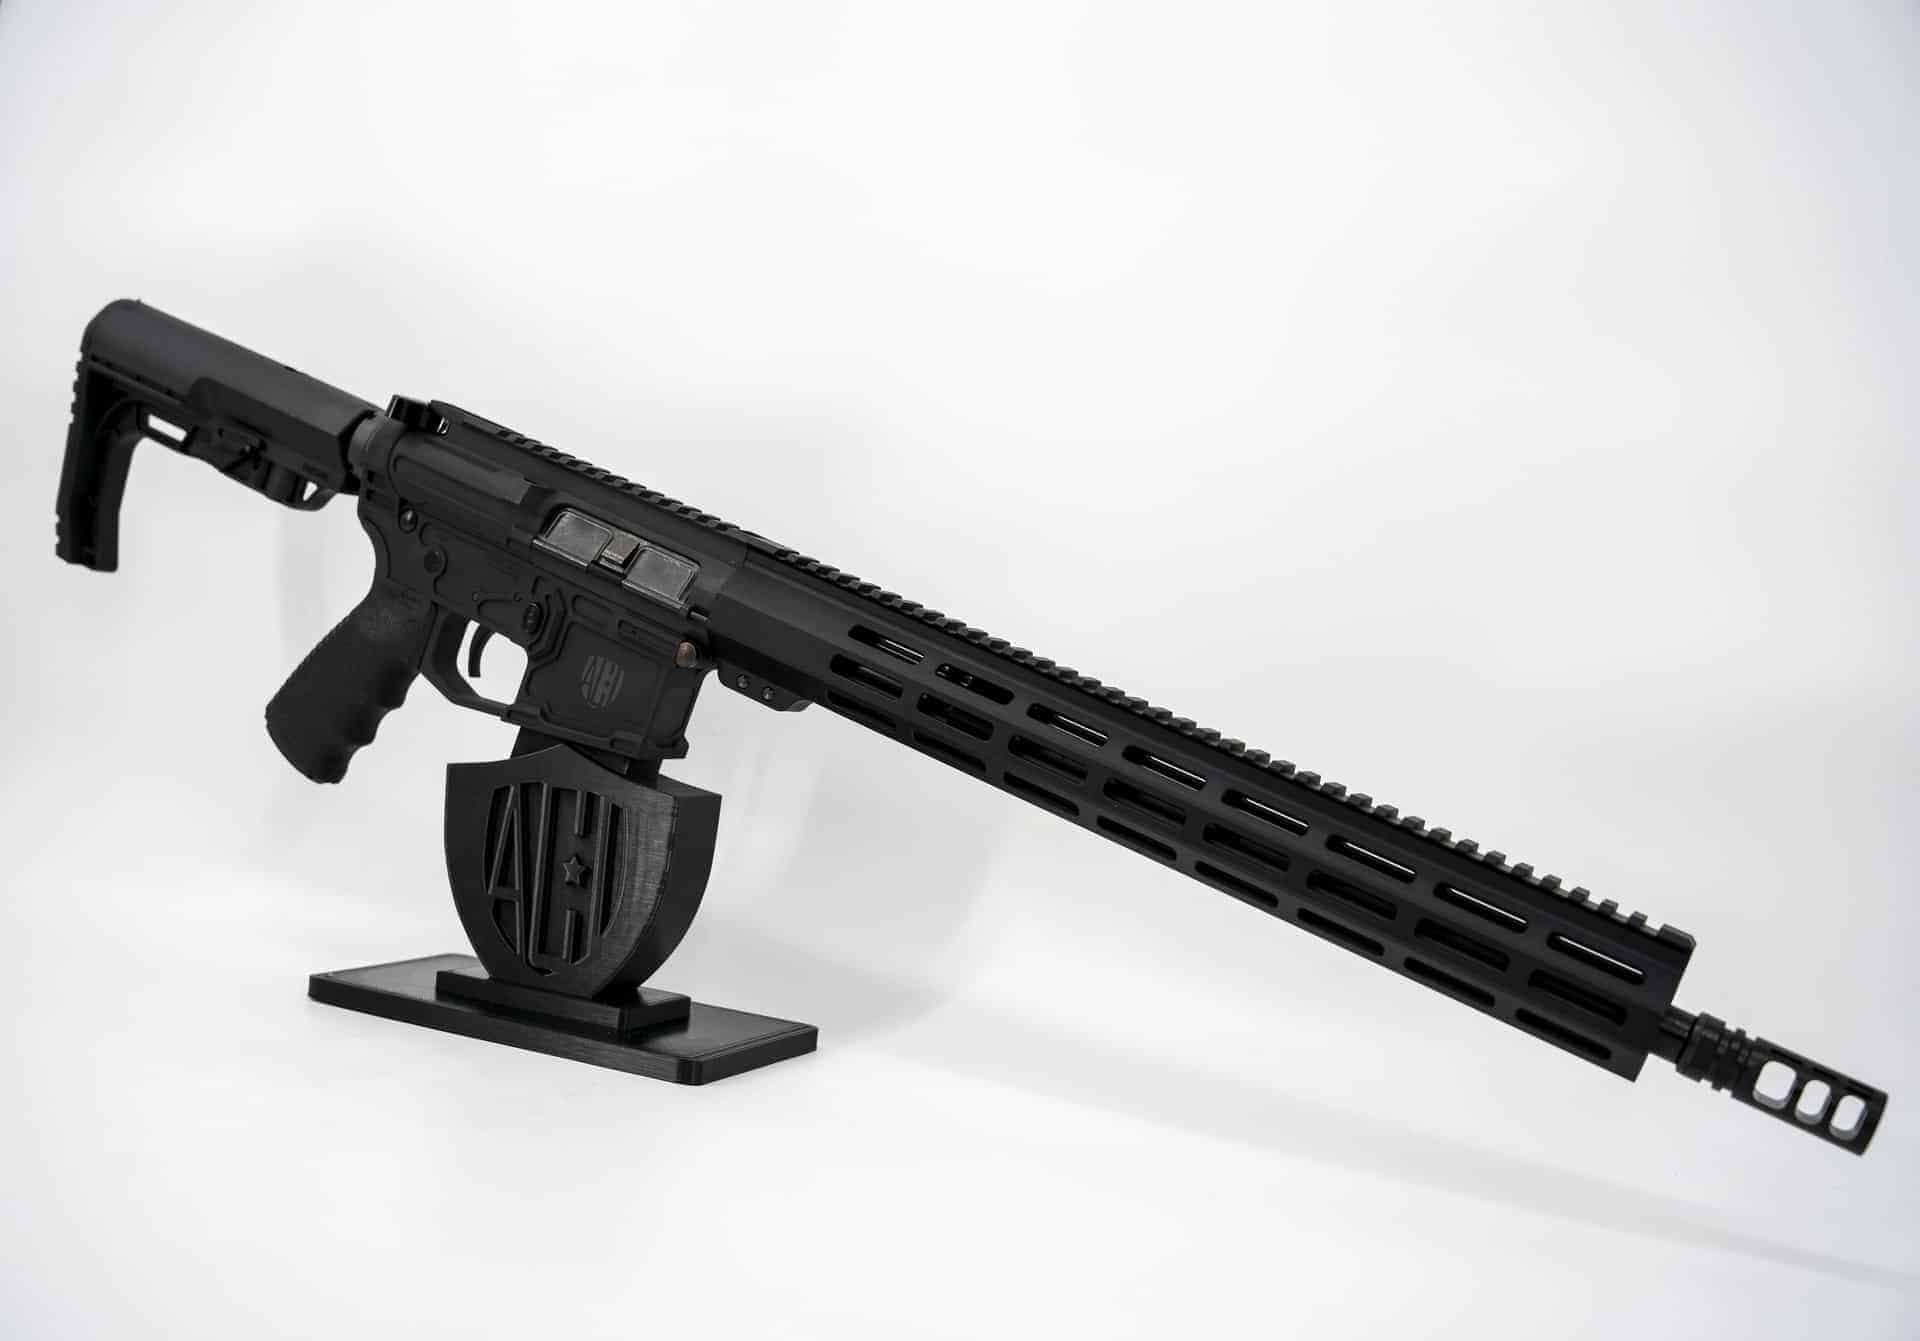 rifle 300 blackout ar15 16 inch MLOK Andro Corp